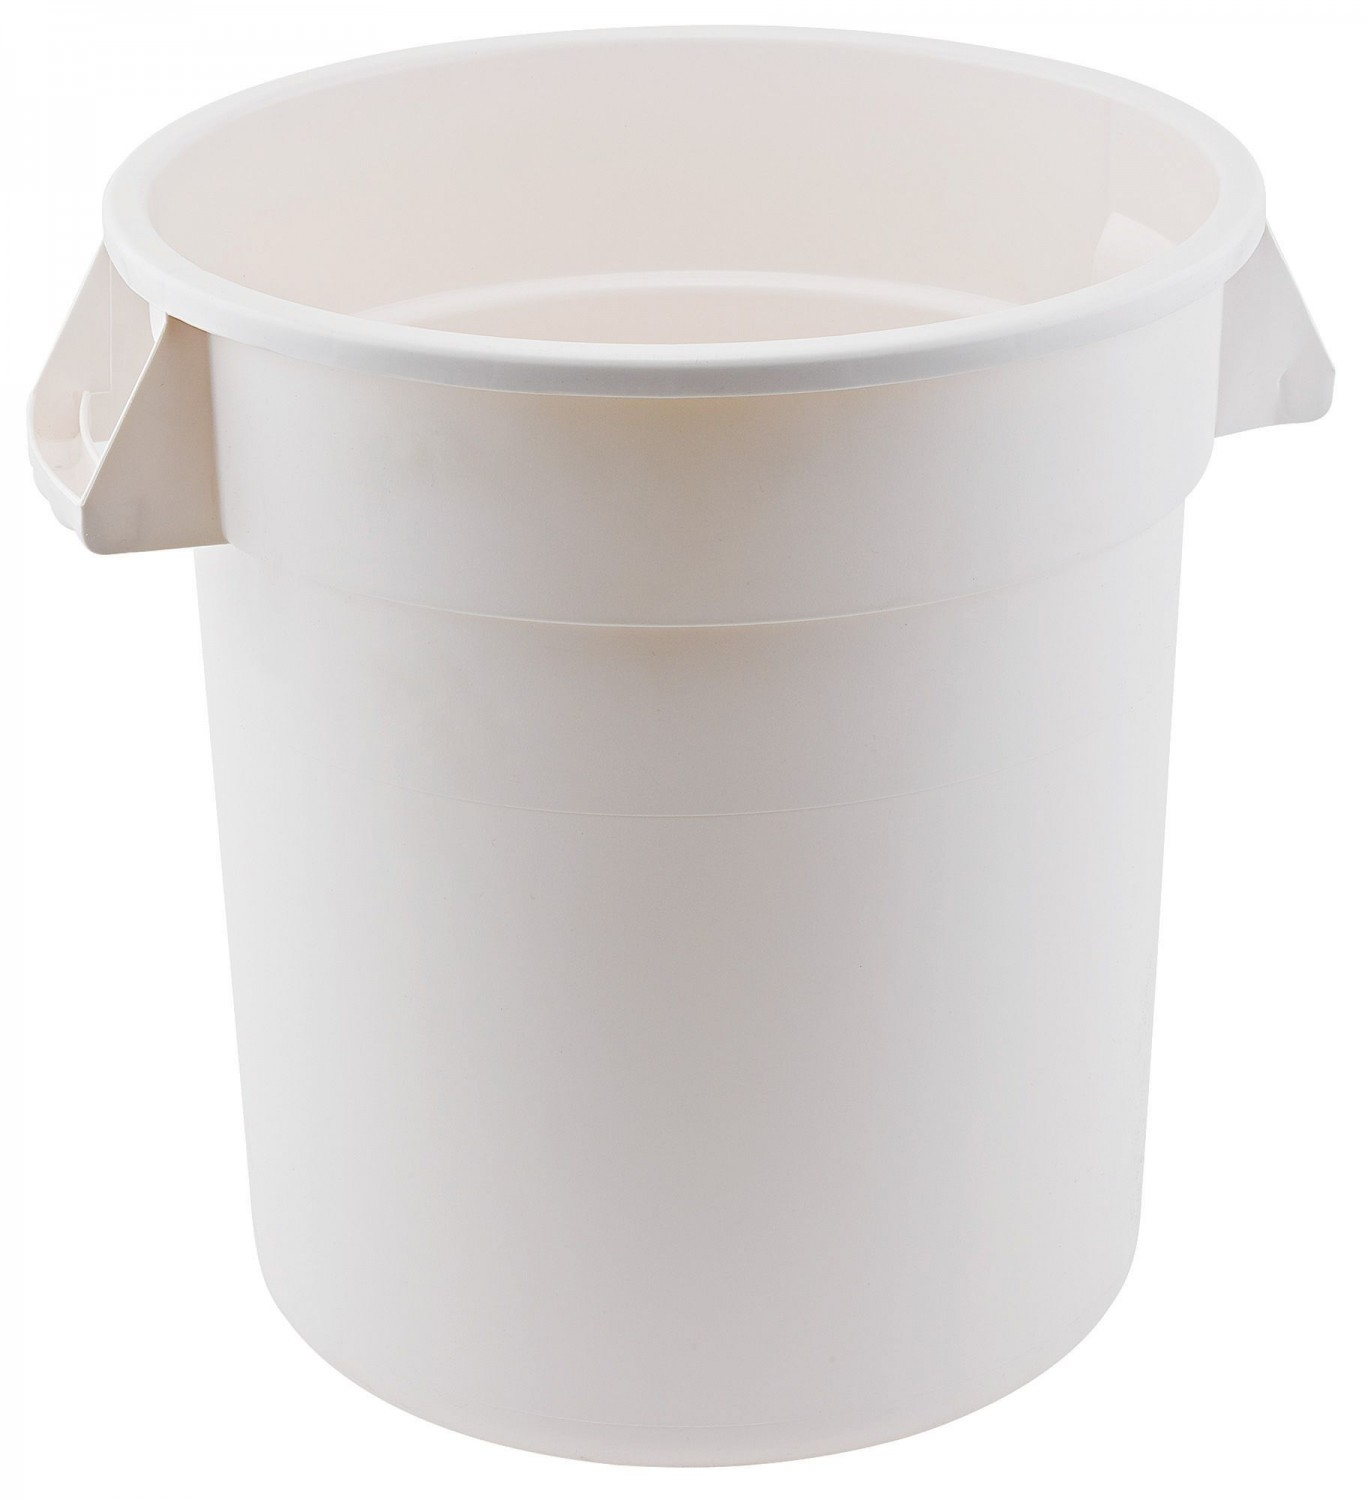 Winco FCW-20 Heavy Duty White Polypropylene Trash Can 20 Gallon